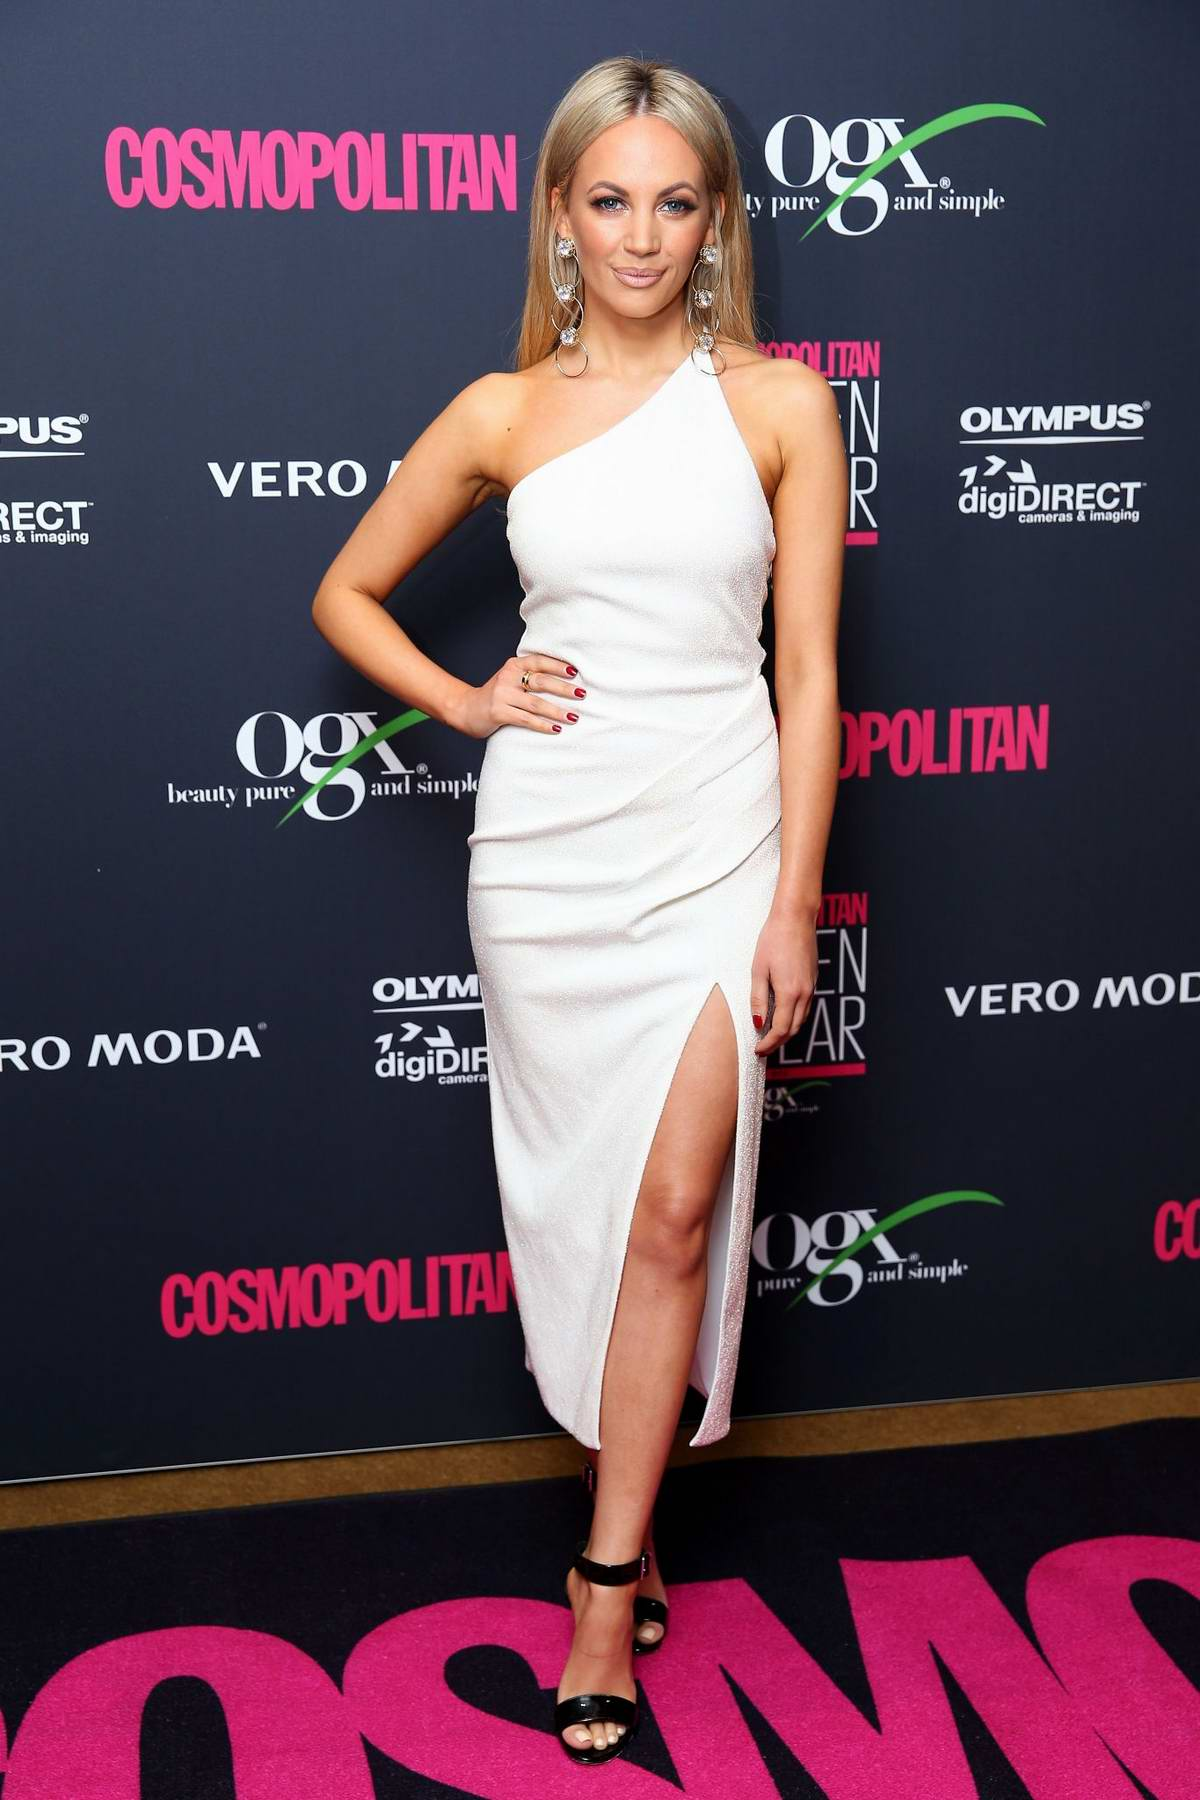 Samantha Jade attends the Cosmopolitan Women Of The Year Awards 2018 in Sydney, Australia